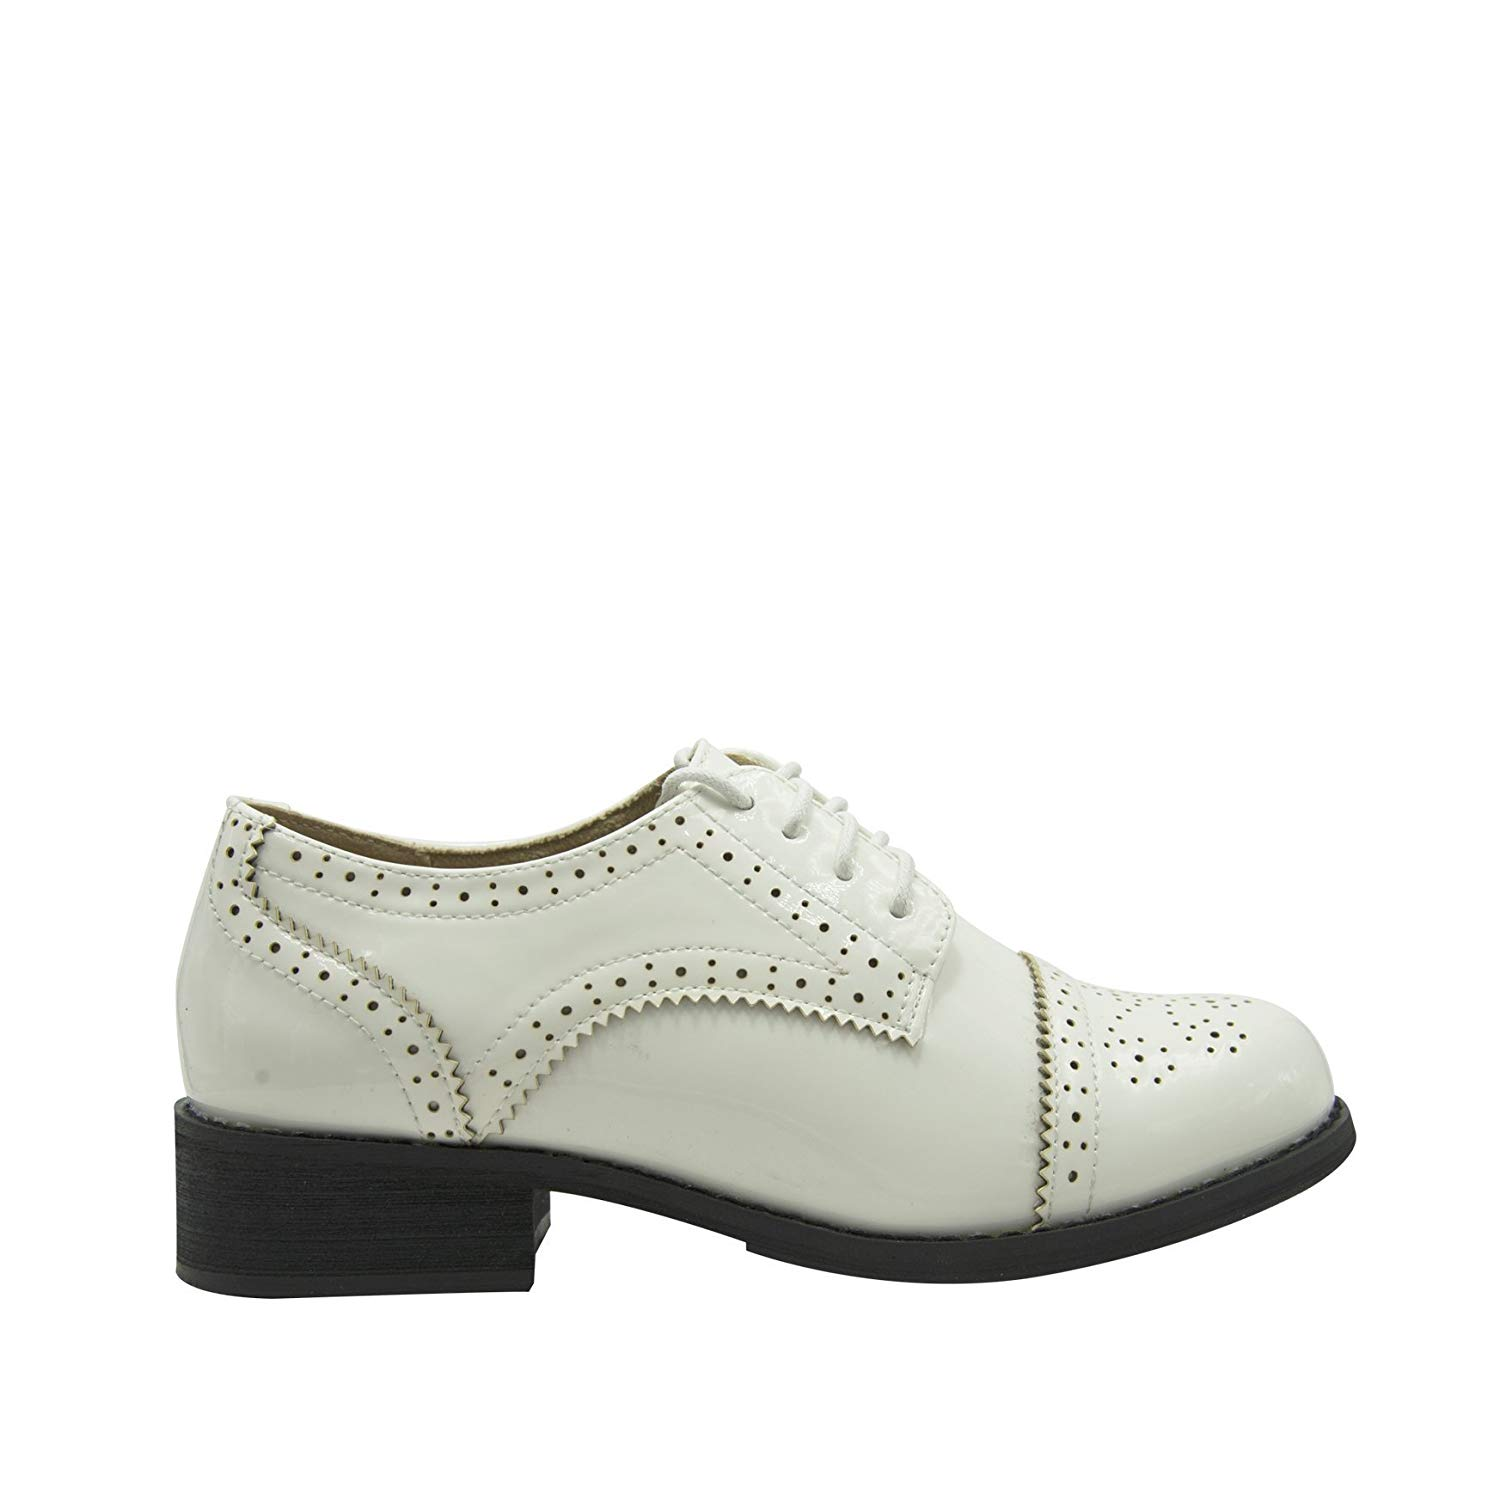 9c2215d3087 Get Quotations · GottaBe Womens Perforated Lace-up White Leather Oxfords  Shoes - Oxfords Shoes for Women -